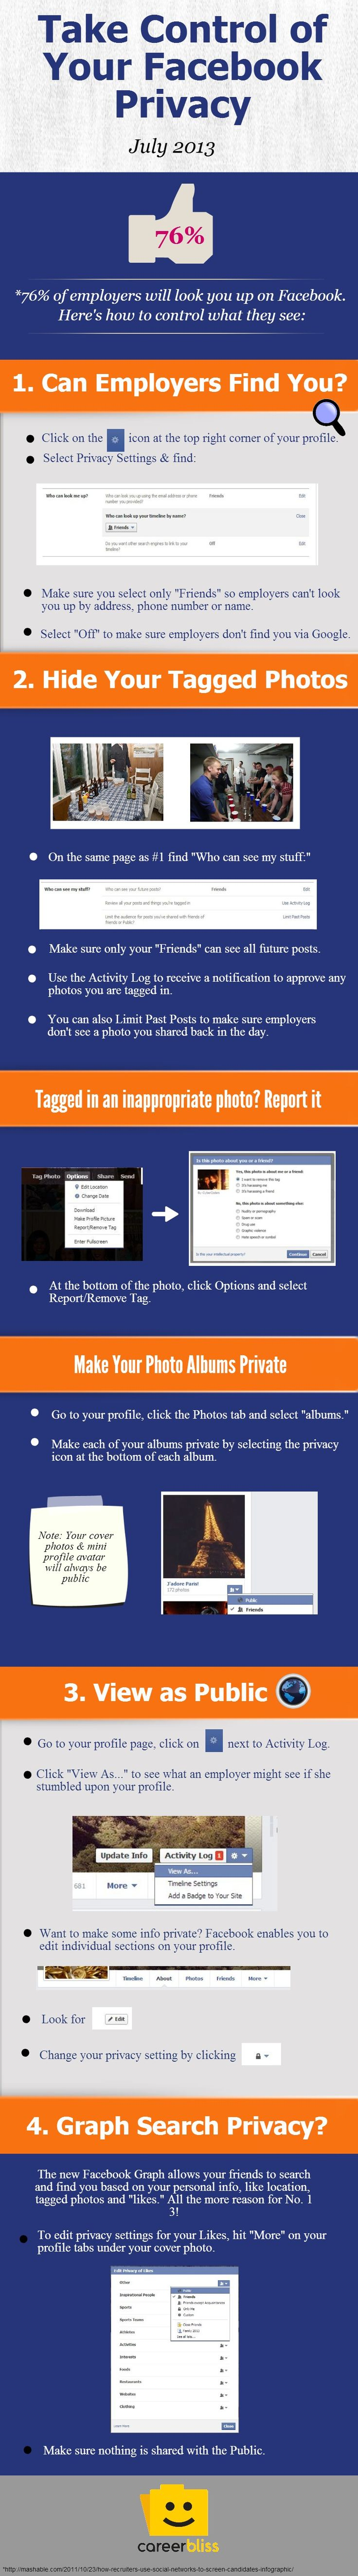 Infographic: Taking Control of Your Facebook Privacy